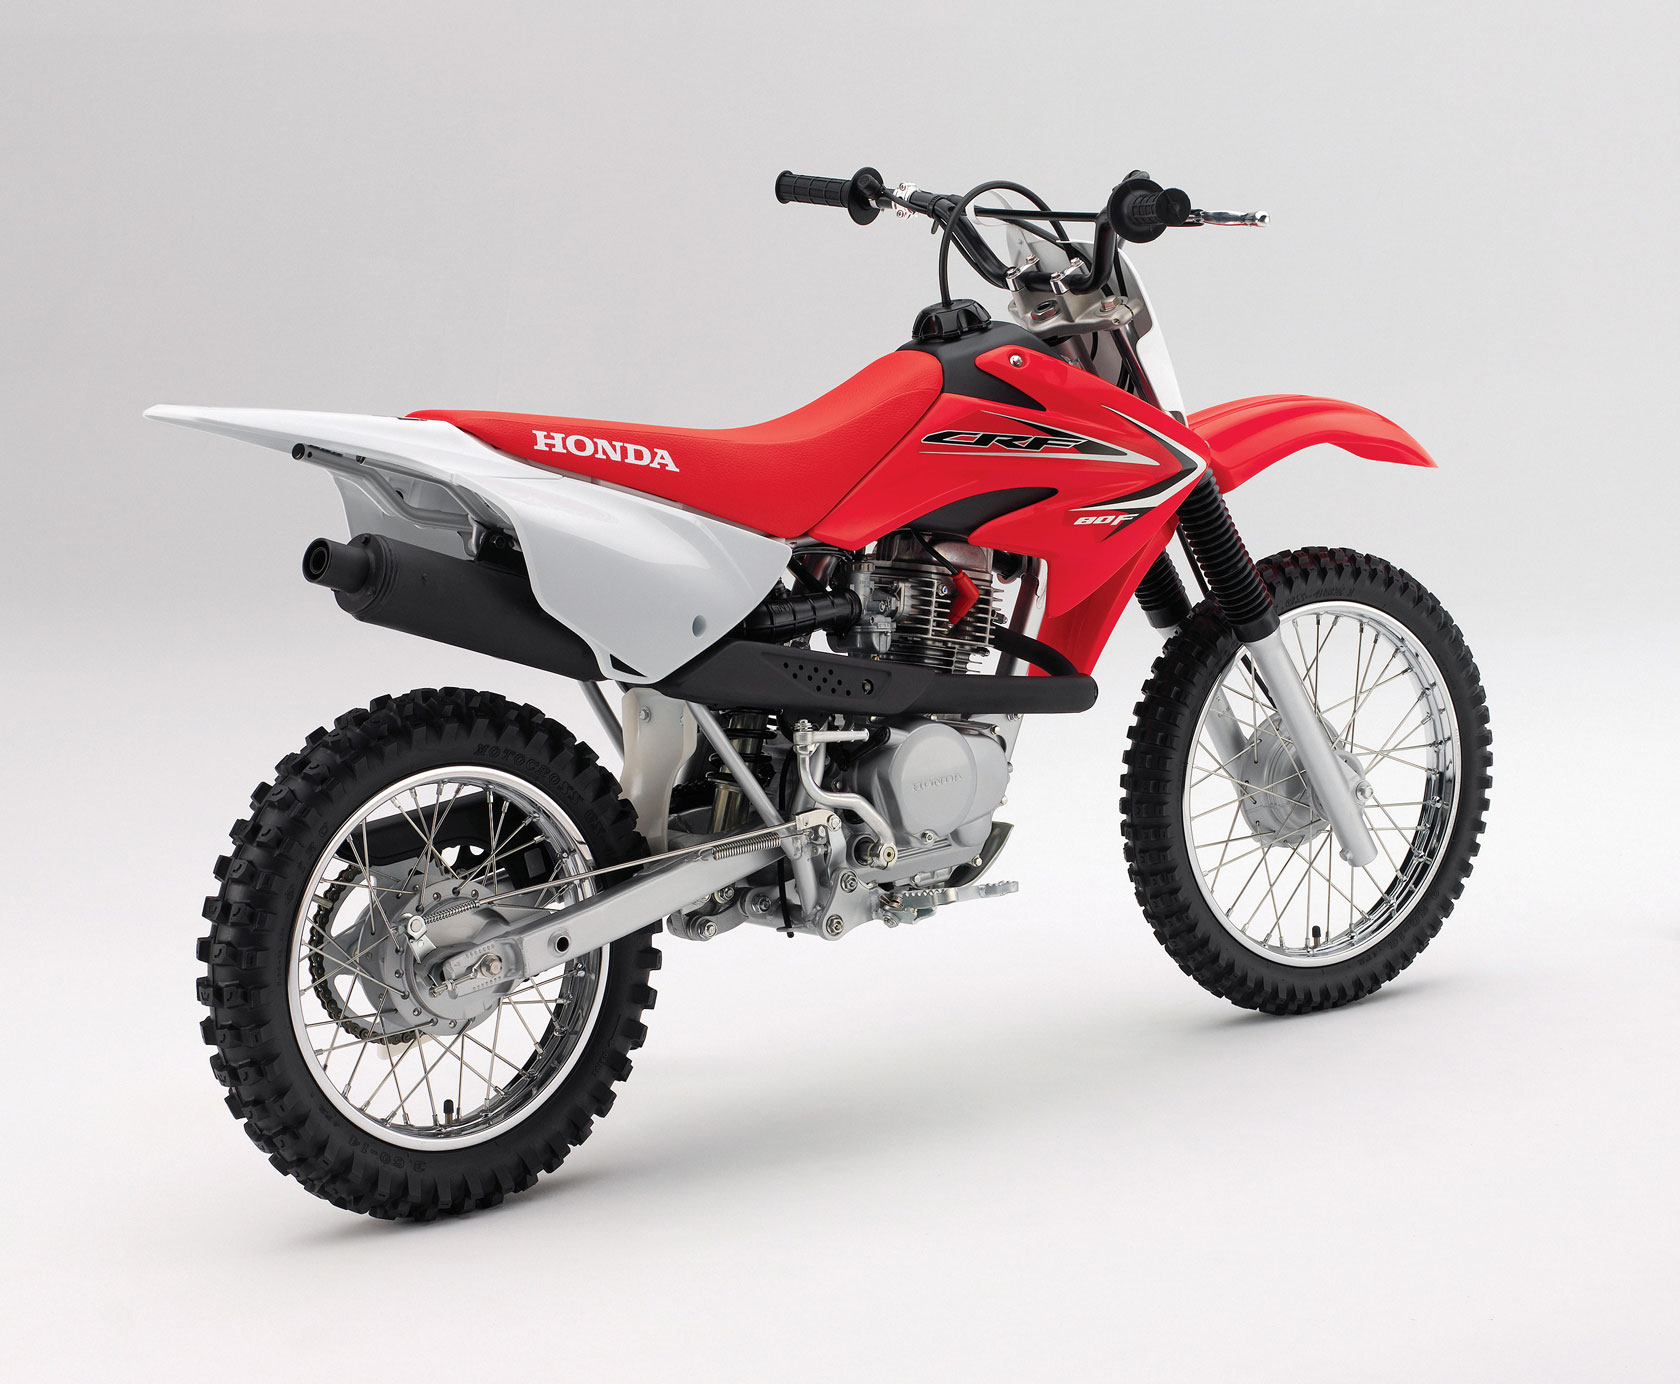 Honda crf80f photo - 3